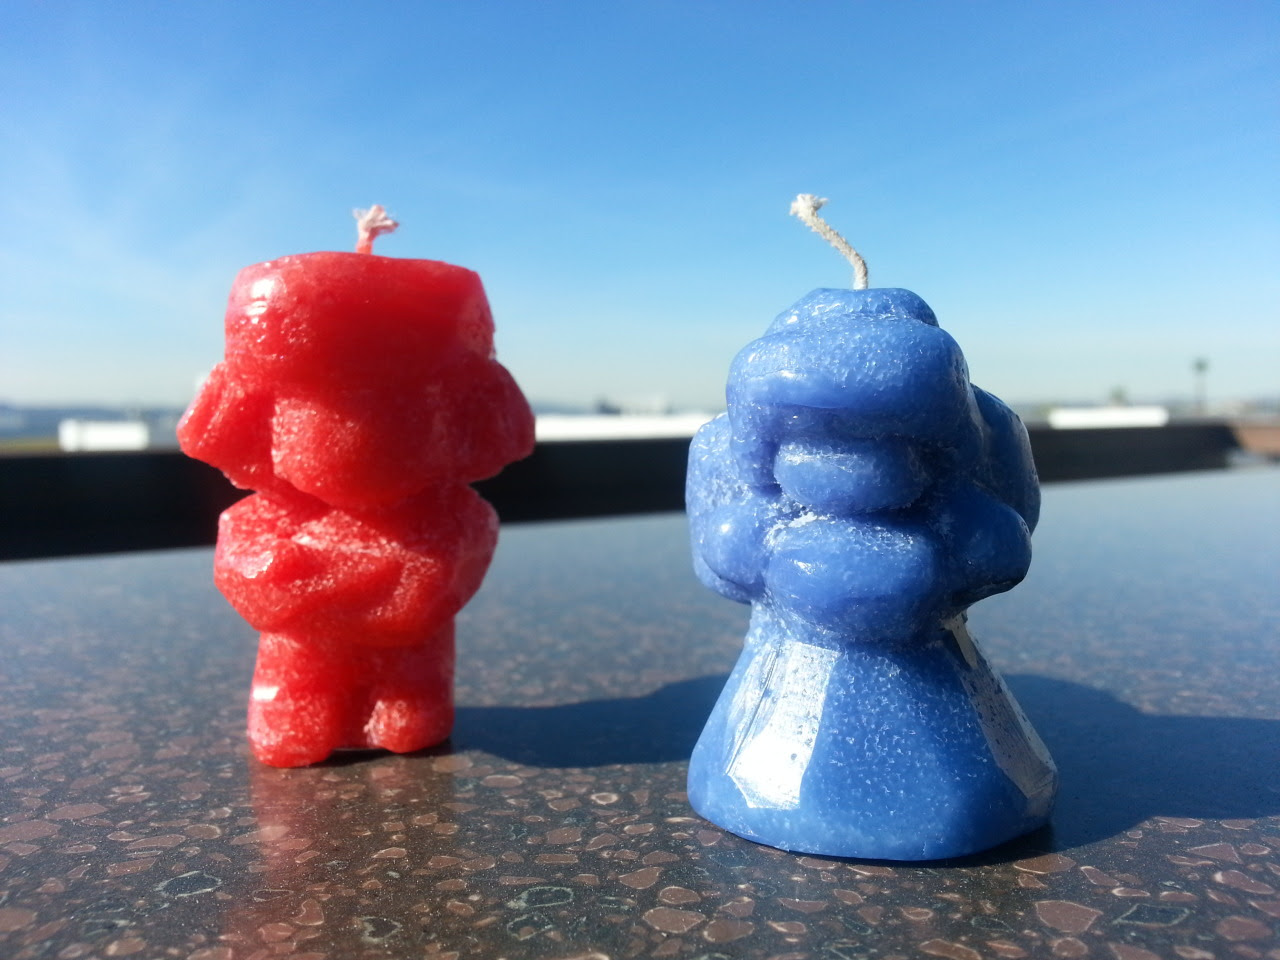 Made these Ruby and Sapphire candle carvings out of some nice scented Yankee Candles! Ruby is 'Macintosh Apple' and Sapphire is 'Blueberry Muffin'